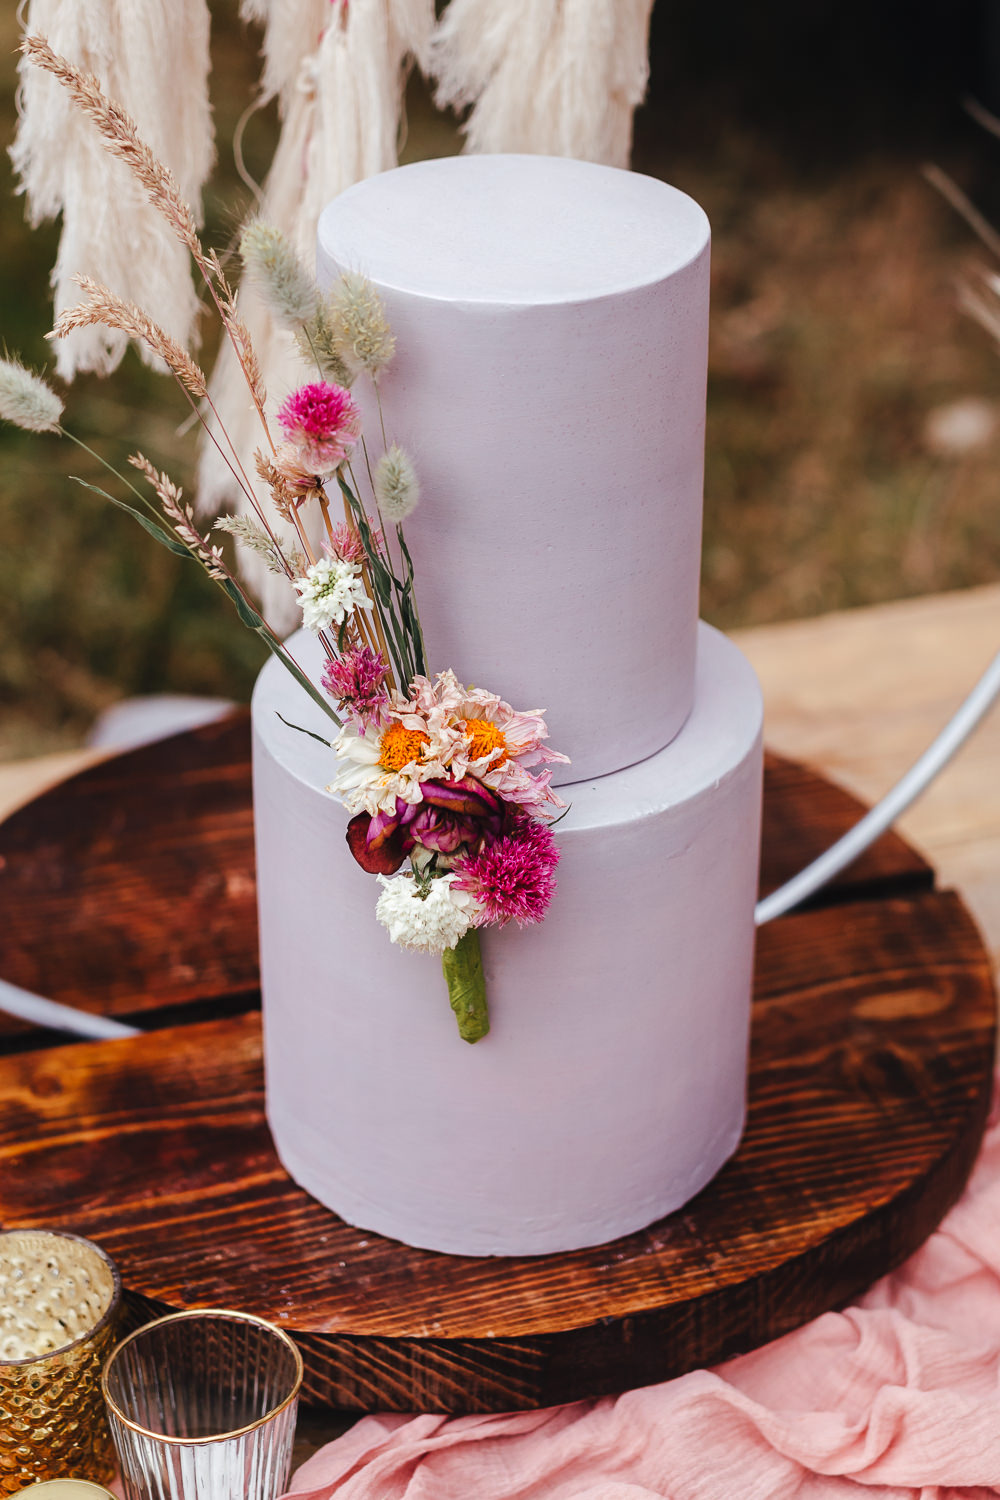 Lilac Lavender Cake Grass Hoop Decor Bohemian Elopement Kirsty Mackenzie Photography